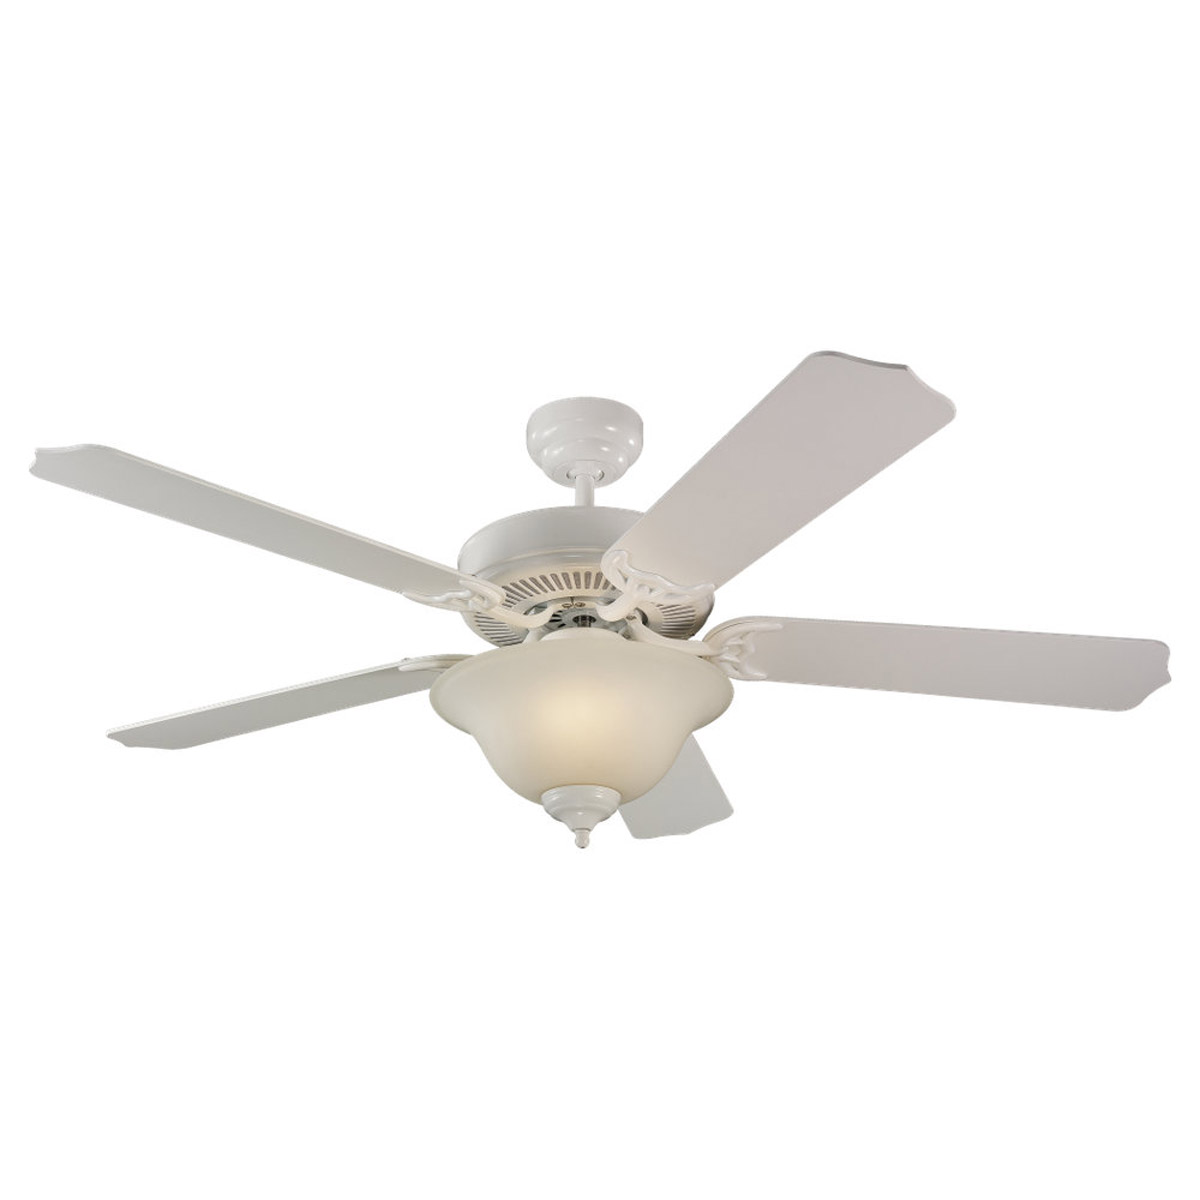 Sea Gull Lighting 2 Light 52in 5 Blade Fan, with Bowl Light, in White 15030BLE-15